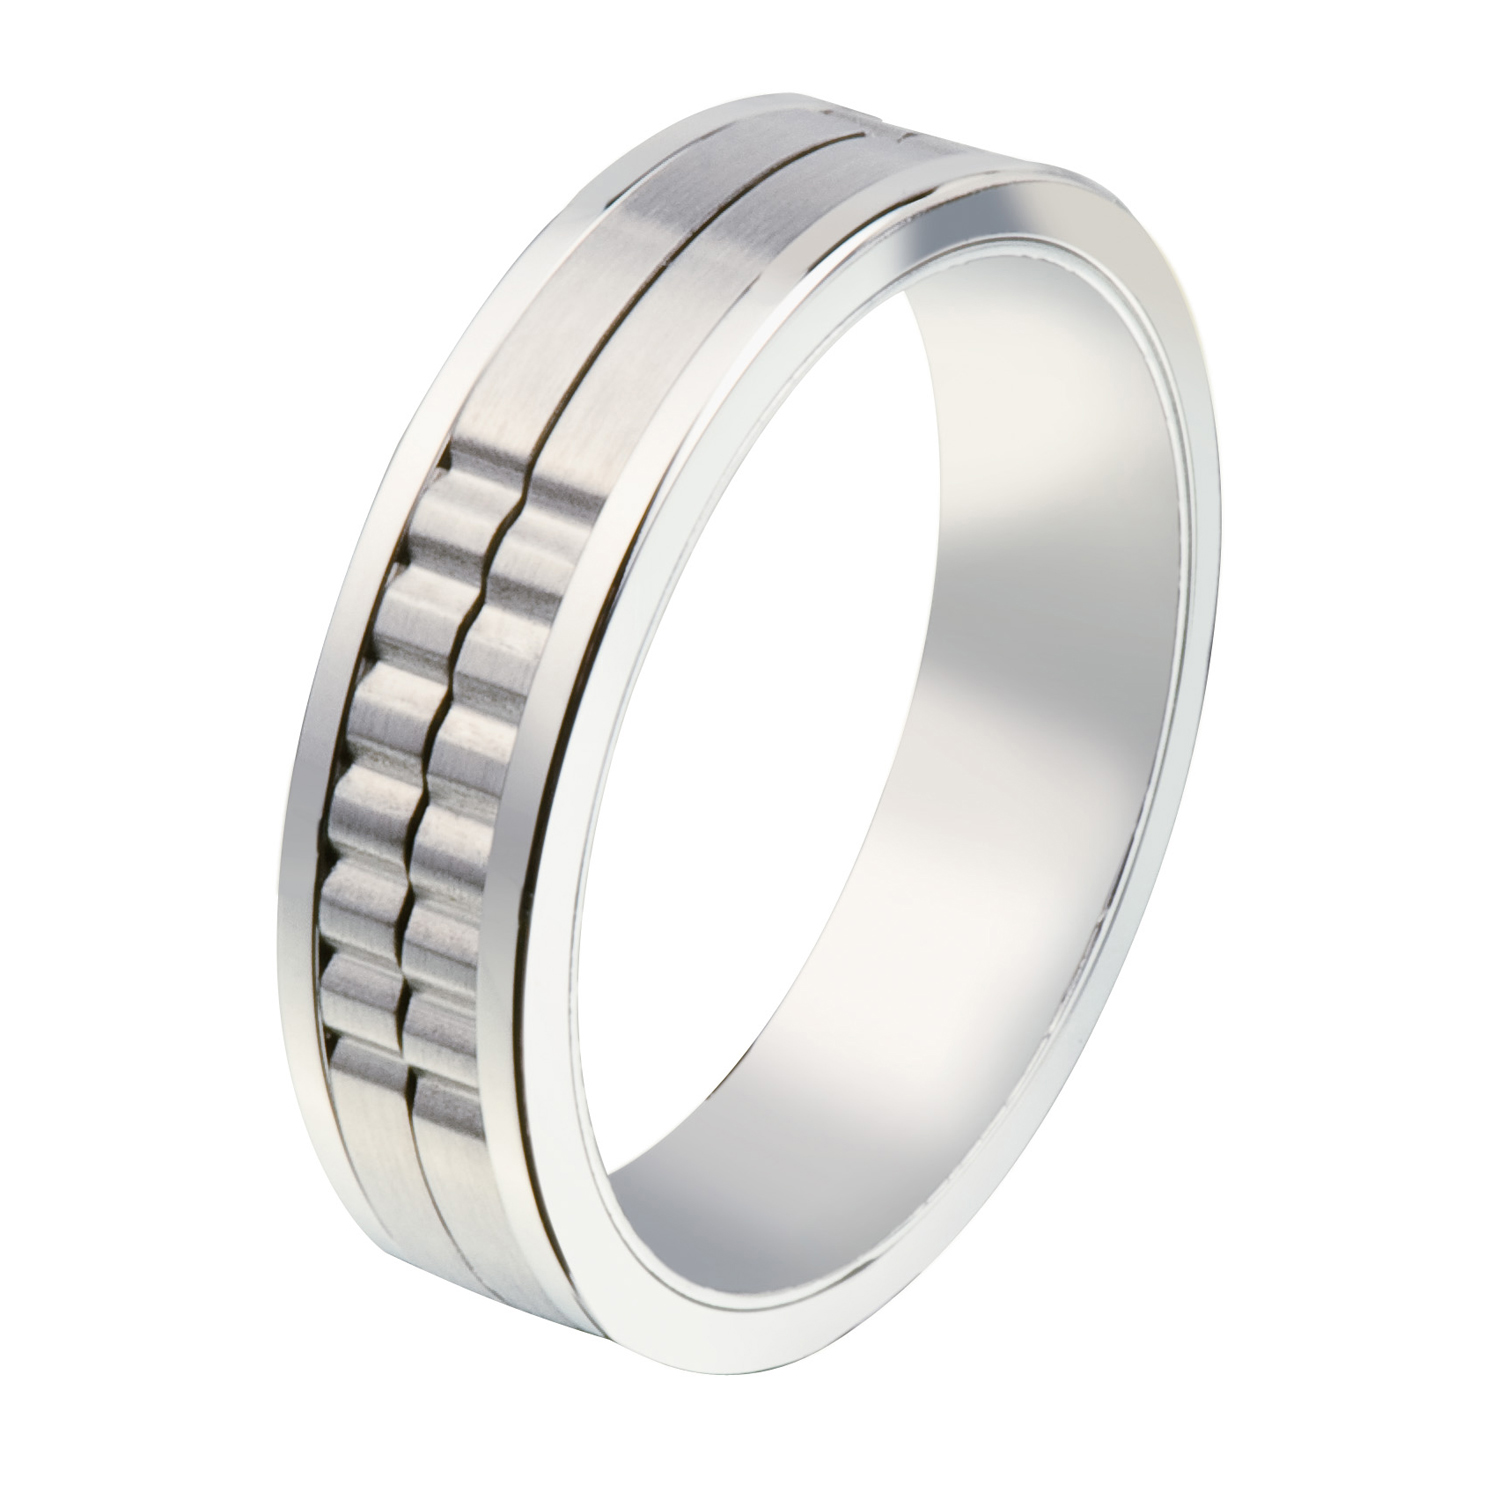 Jos Von Arx – Arx Movable Groove Ring in Presentation Gift Box